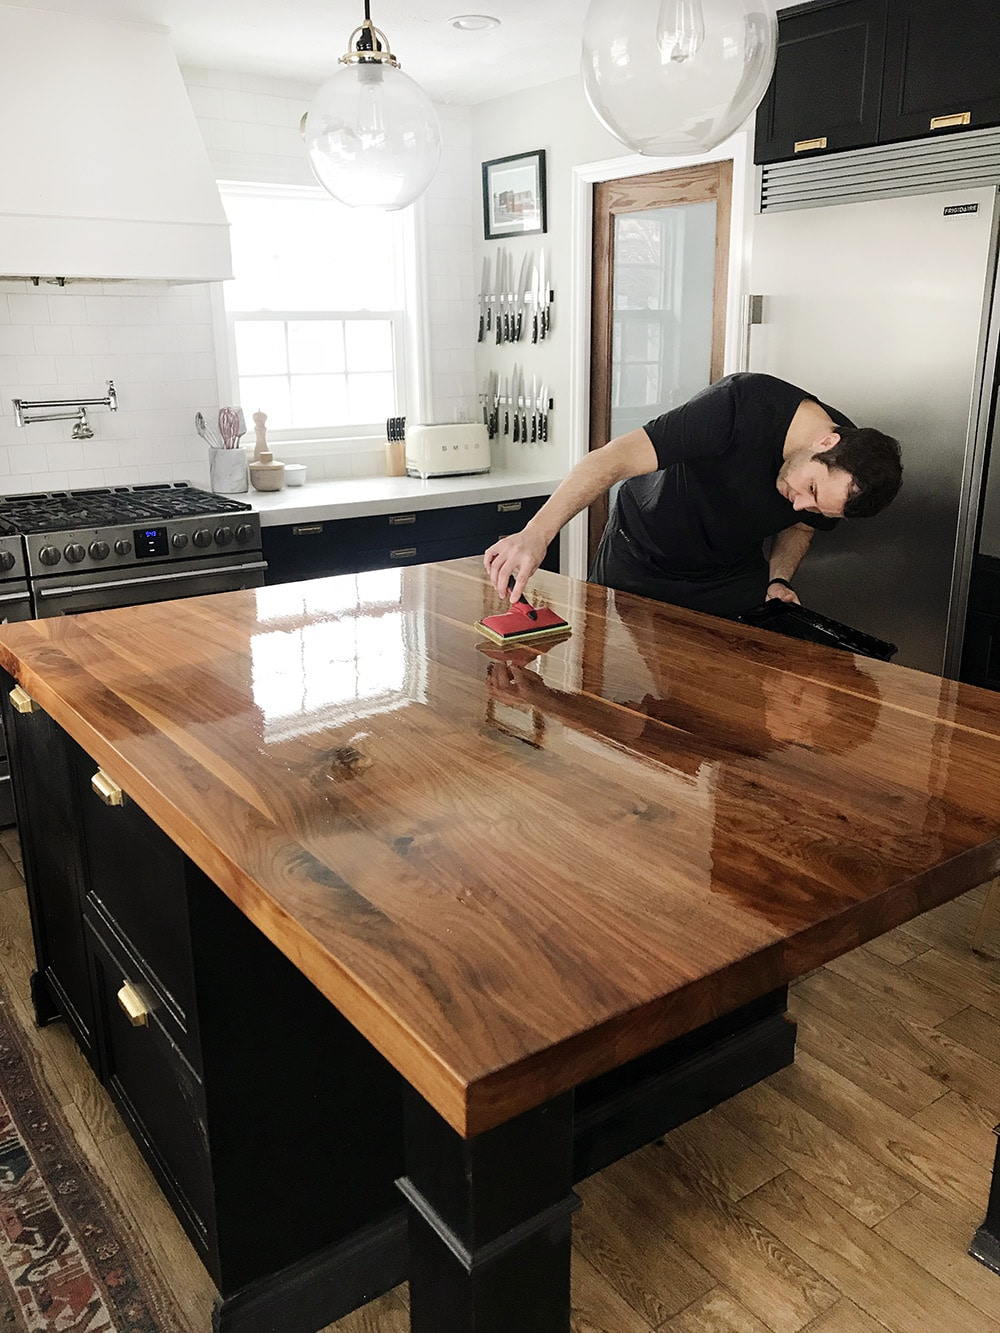 A Big Sale On Butcher Block Countertops You Can Use Them